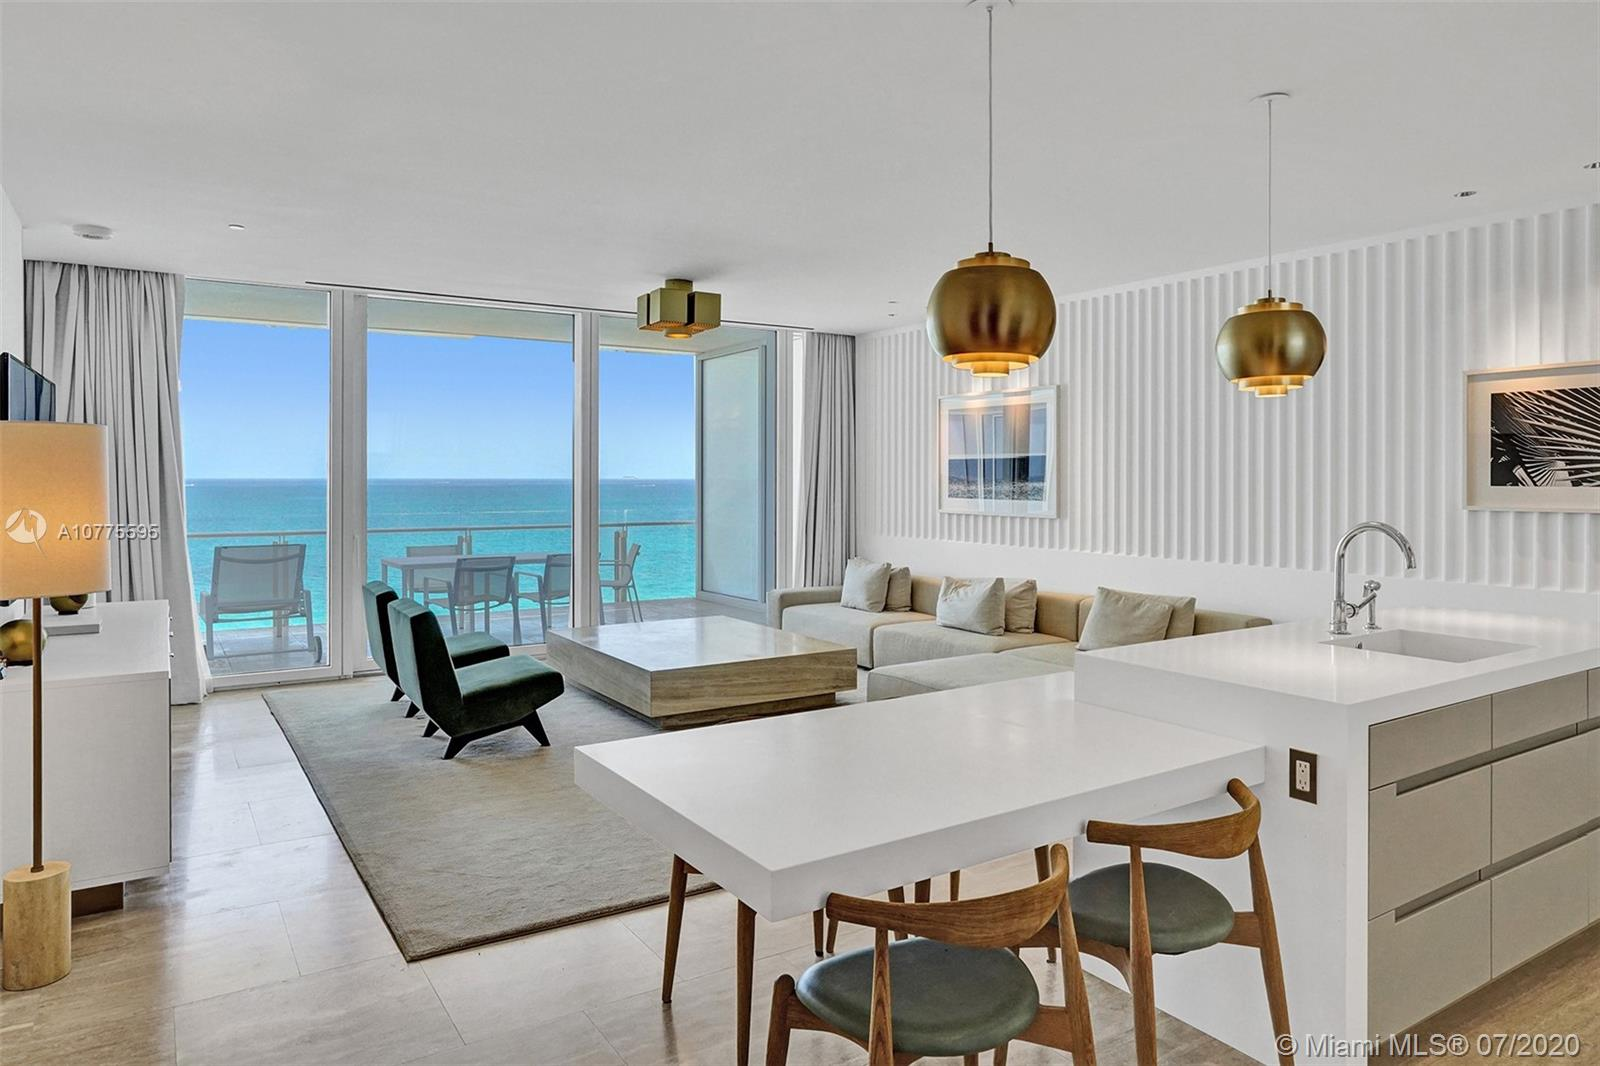 view from inside condo n-1013 at the surf club, room has a large marble coffee table, black modern chairs, white countertops with a view of miami beach.